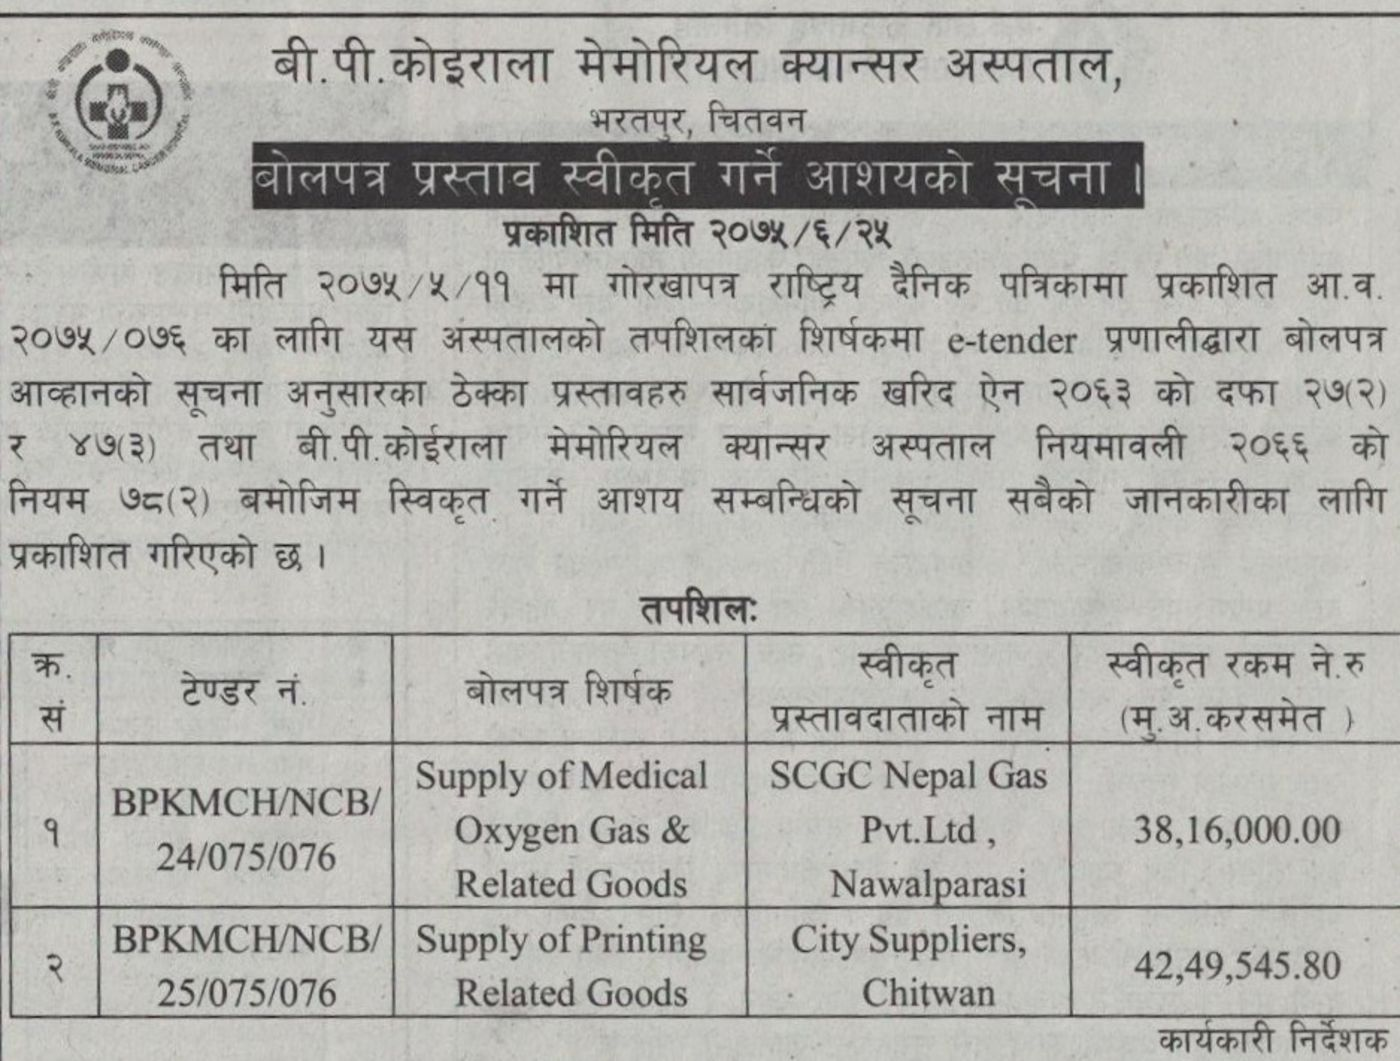 letter of intent supply of medicine gas and related goods and printing related goods